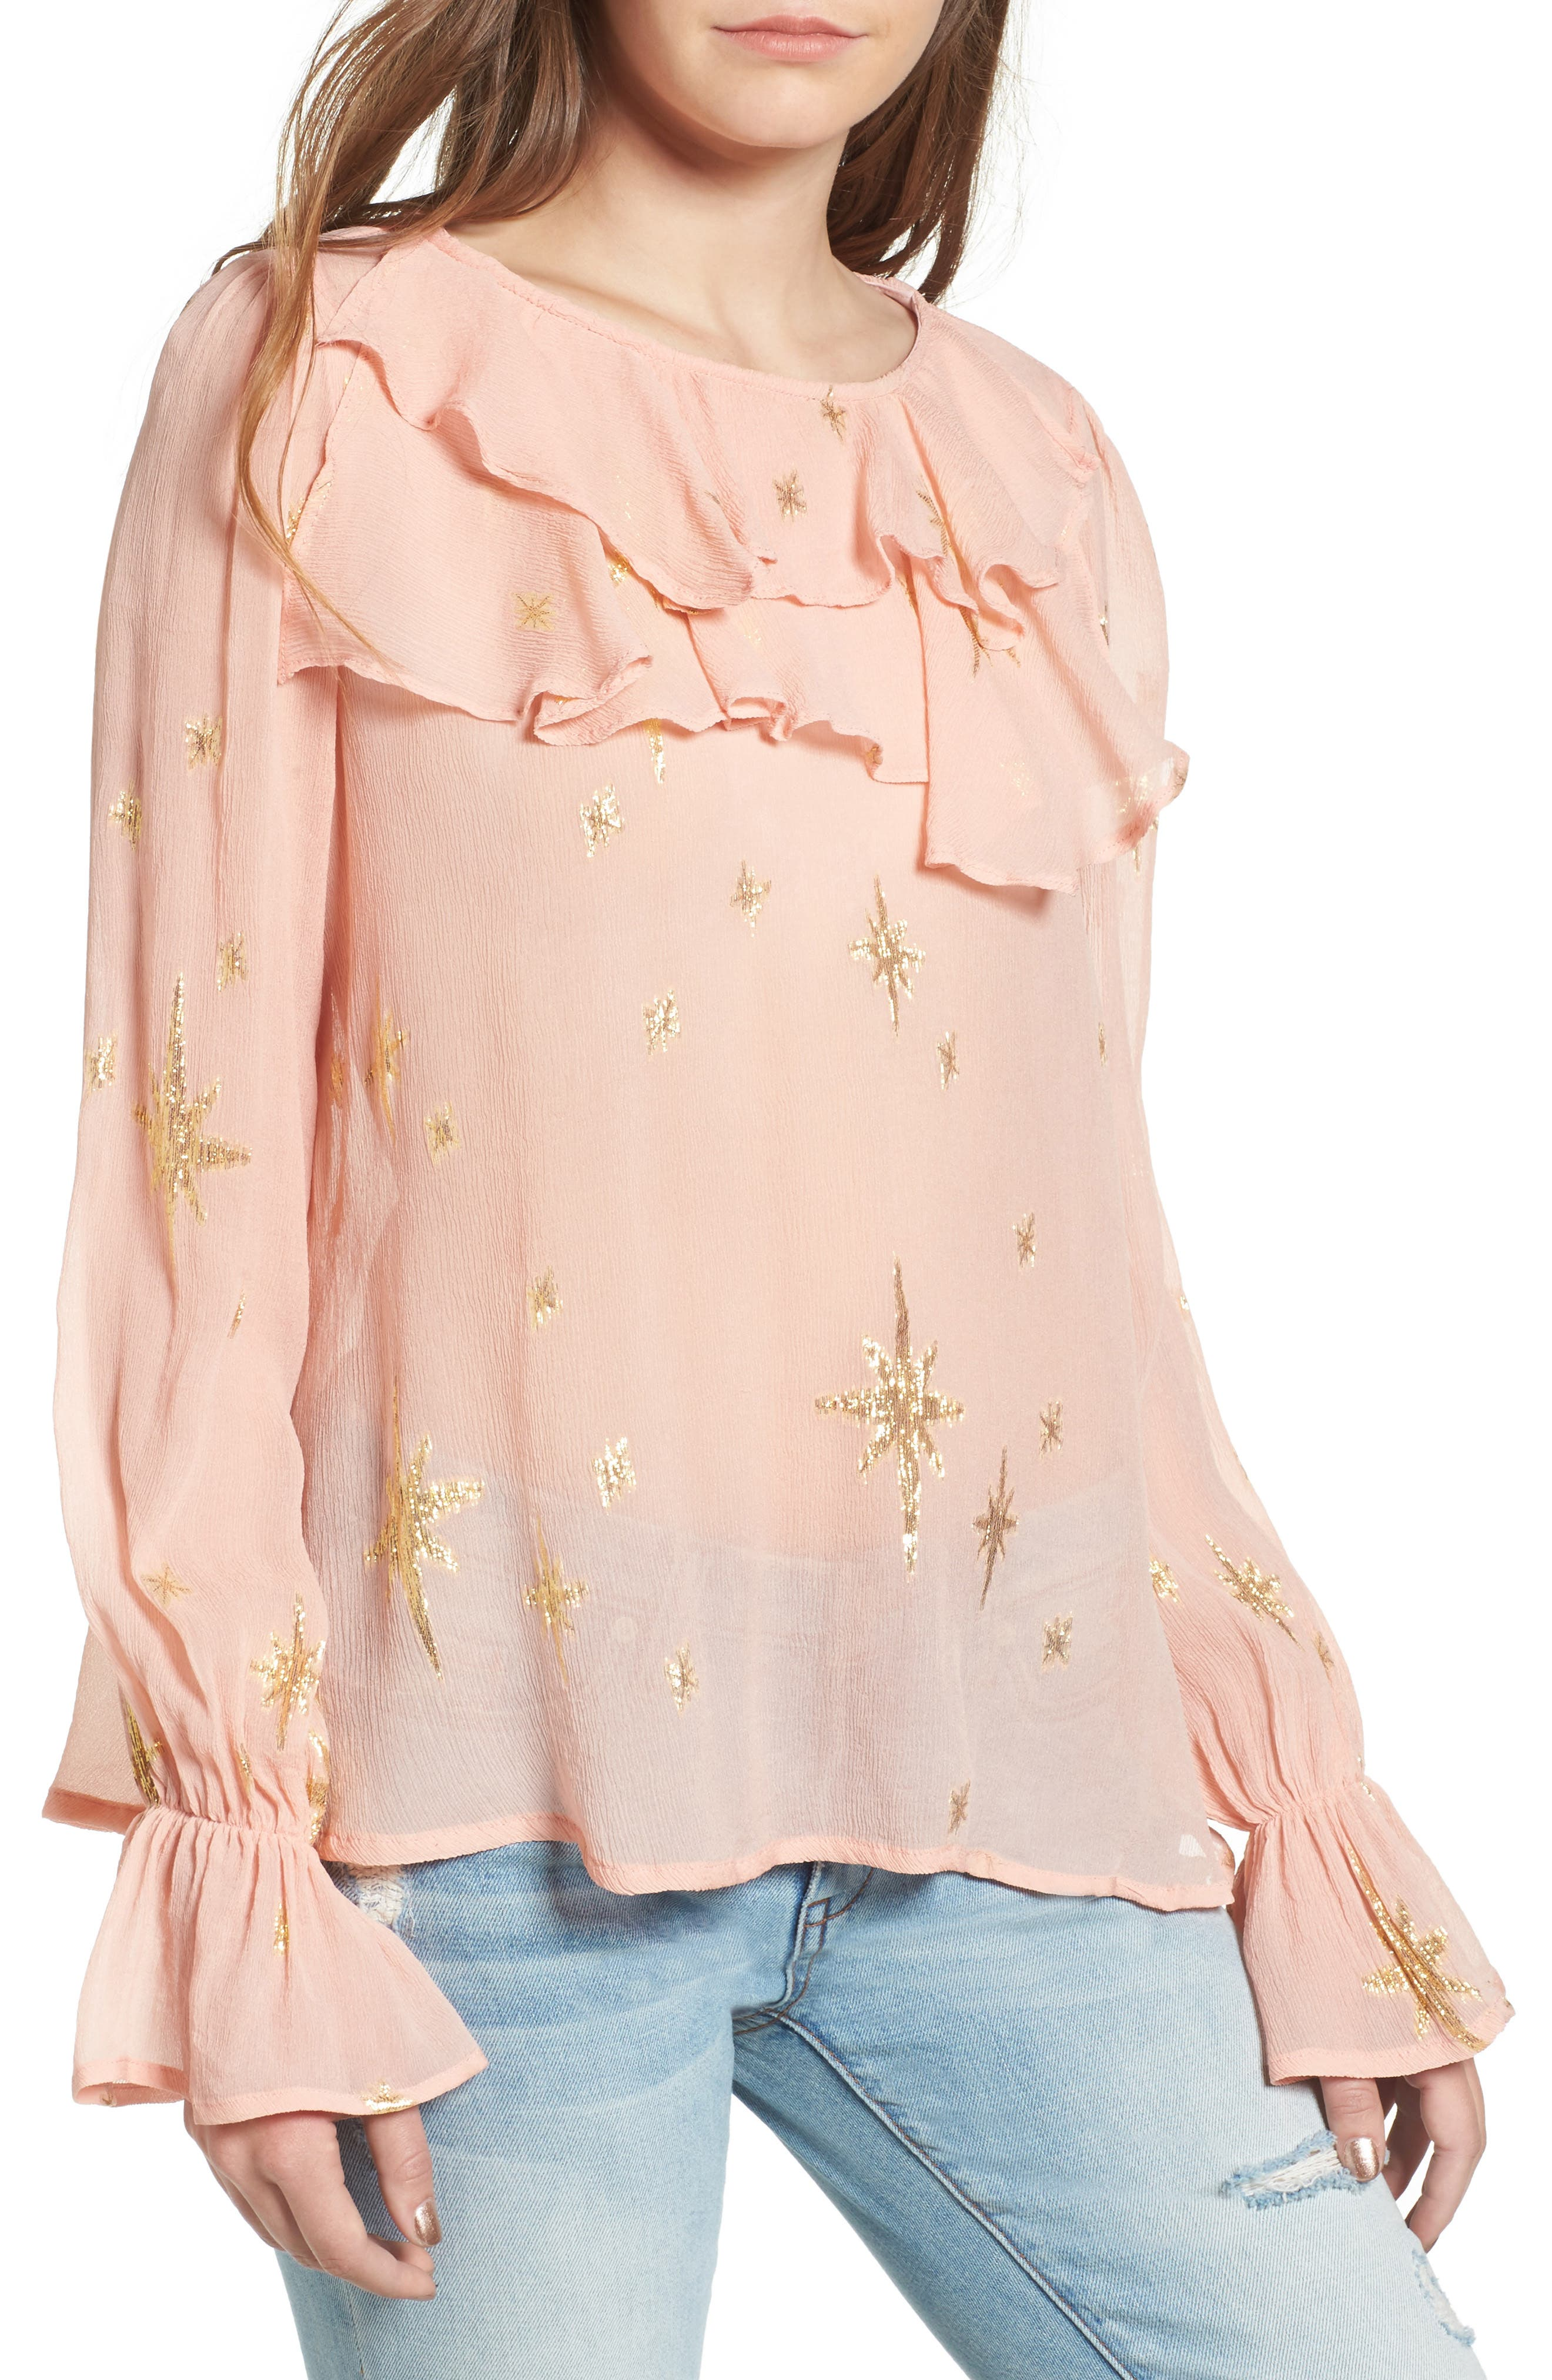 Gilded Star Blouse,                         Main,                         color, Rose Gold